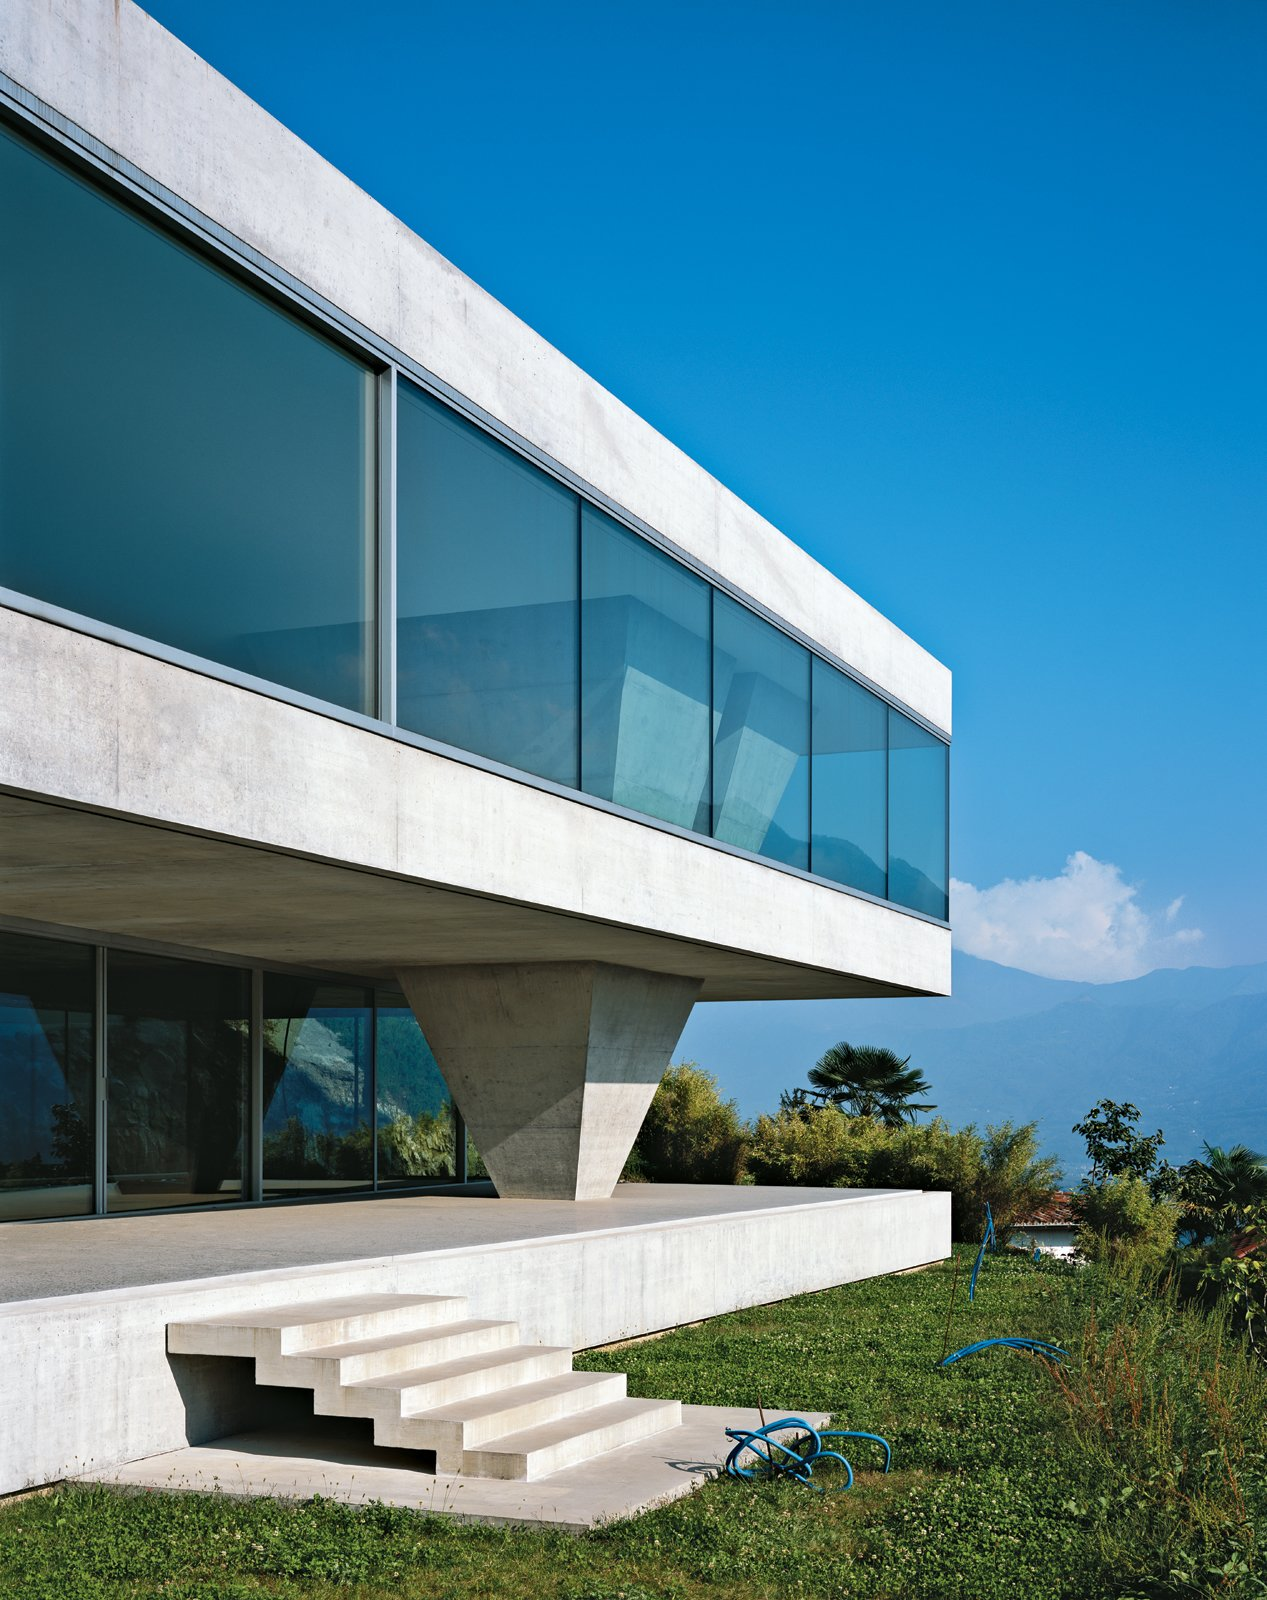 Exterior, Concrete Siding Material, Flat RoofLine, House Building Type, and Glass Siding Material Casa ai Pozzi makes a bold statement on the mountainous shores of Lake Maggiore. The windows that wrap around this concrete villa afford stunning views of the Swiss Alps, and the inverted pyramid that supports the structure subtly mirrors the surrounding mountain peaks.  Photo by: Hélène Binet  Photo 1 of 1 in A Concrete Double Villa in Switzerland